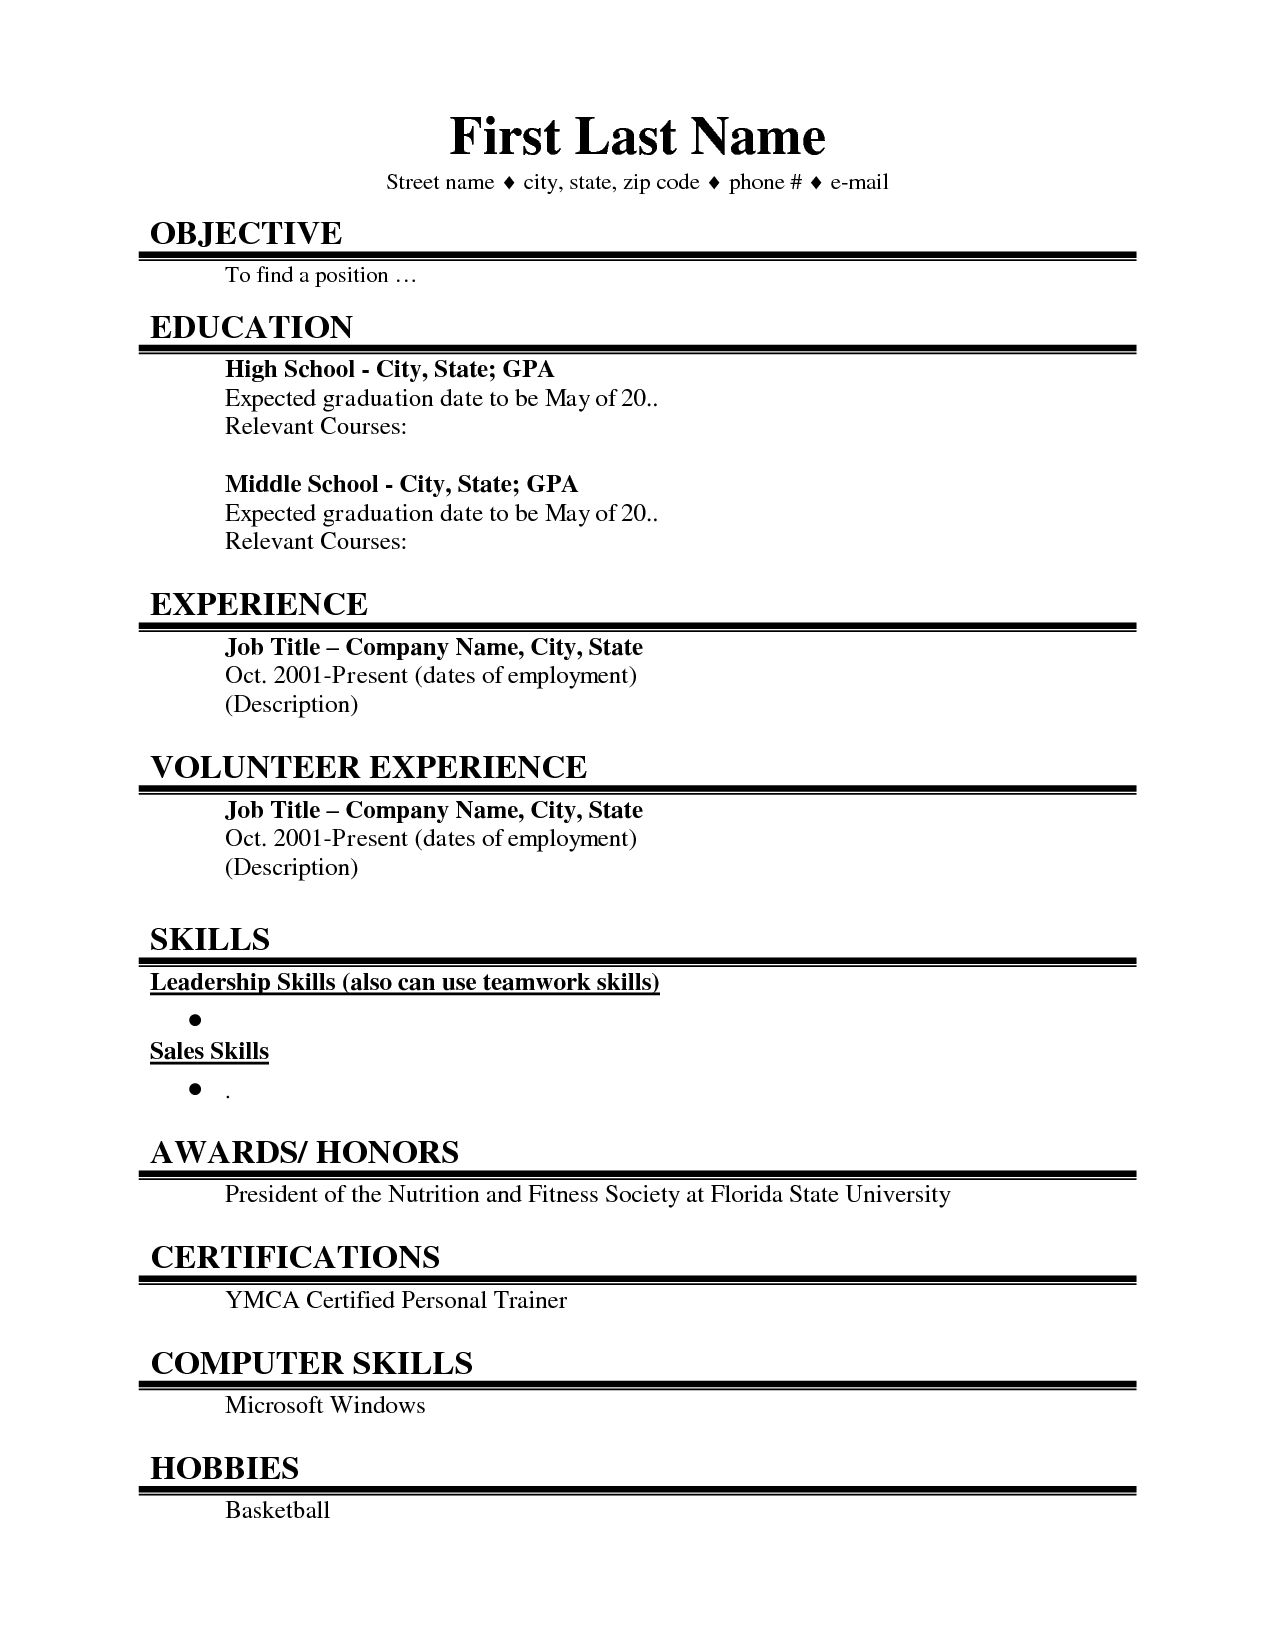 florida state resume template